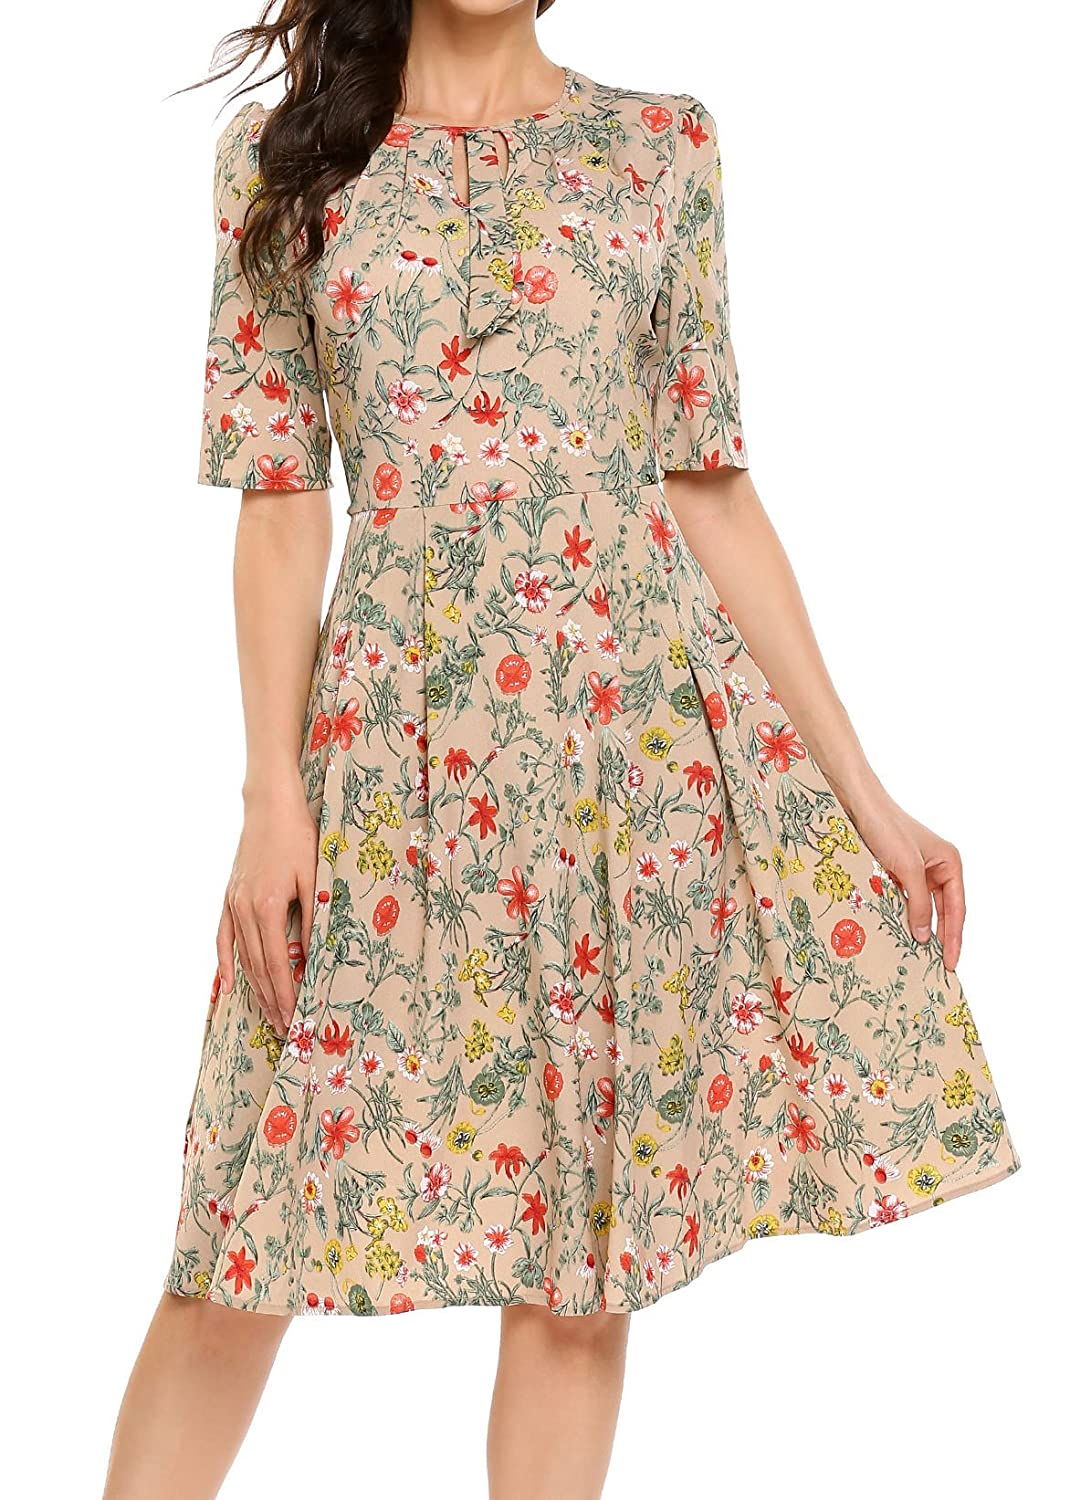 500 Vintage Style Dresses for Sale | Vintage Inspired Dresses Casual Short Sleeve Floral Printed Fit and Flare Party Dress ACEVOG Womens $30.79 AT vintagedancer.com